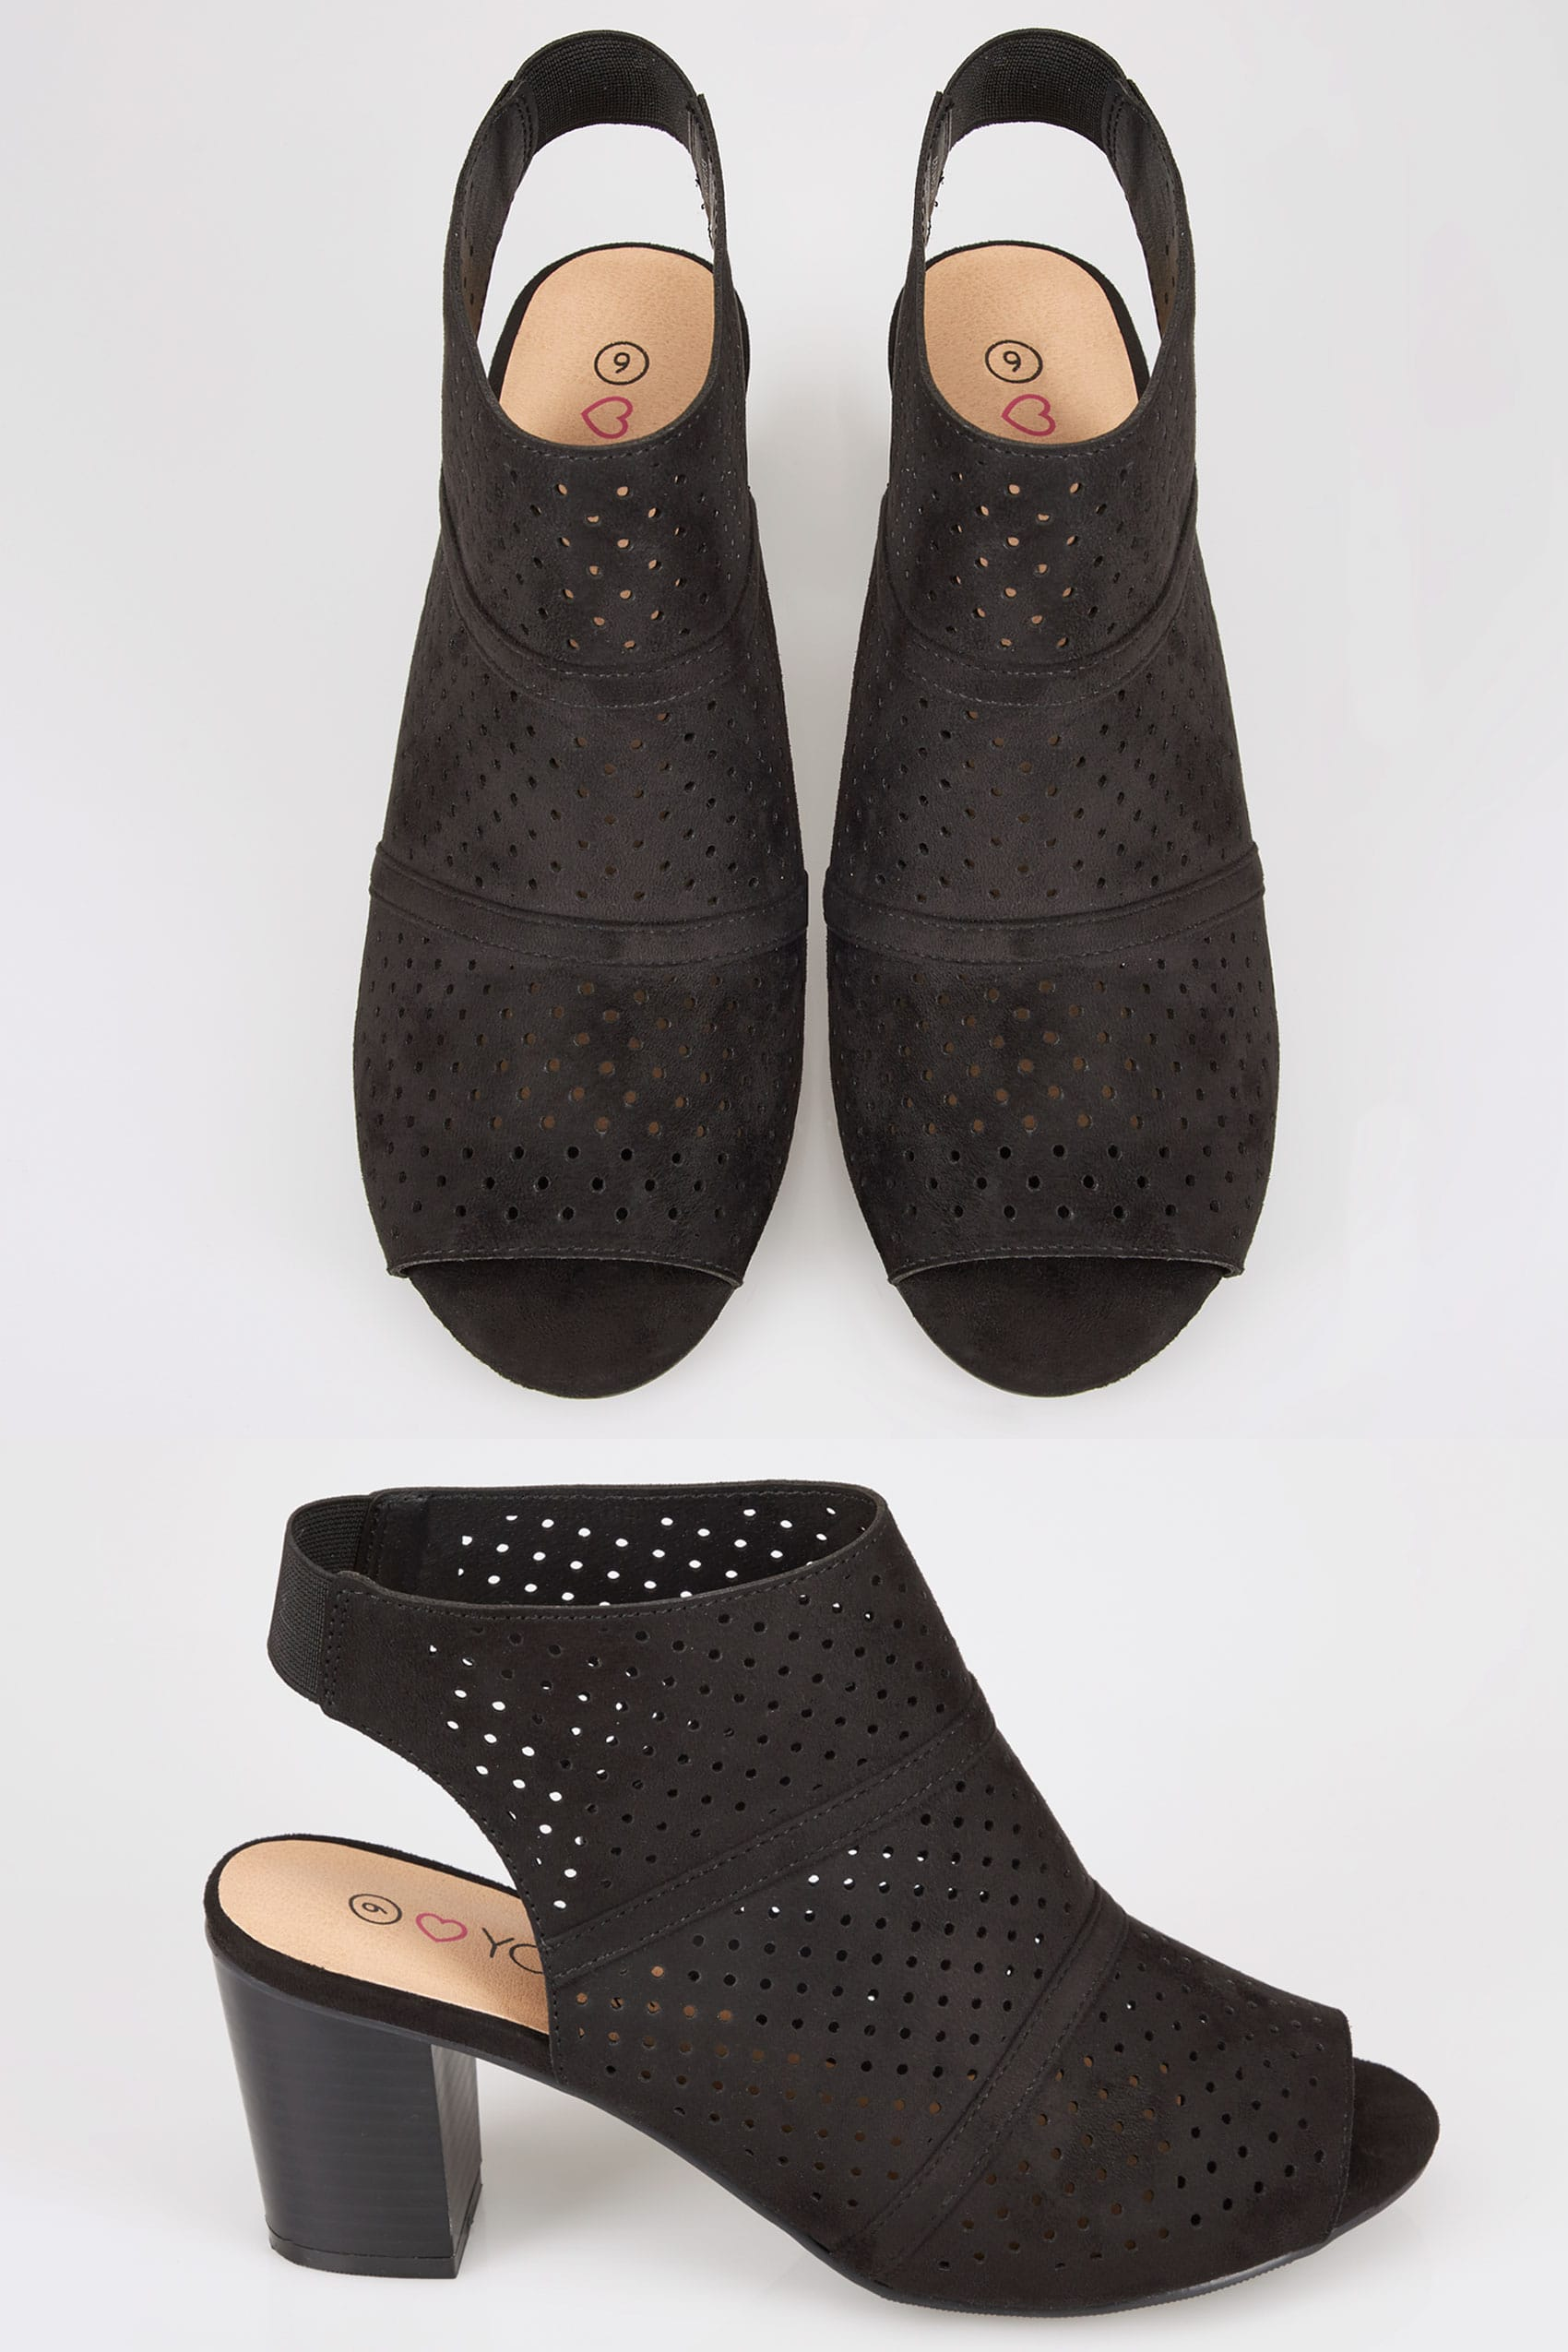 Rooms: Black Laser Cut Sandals With Block Heel In EEE Fit